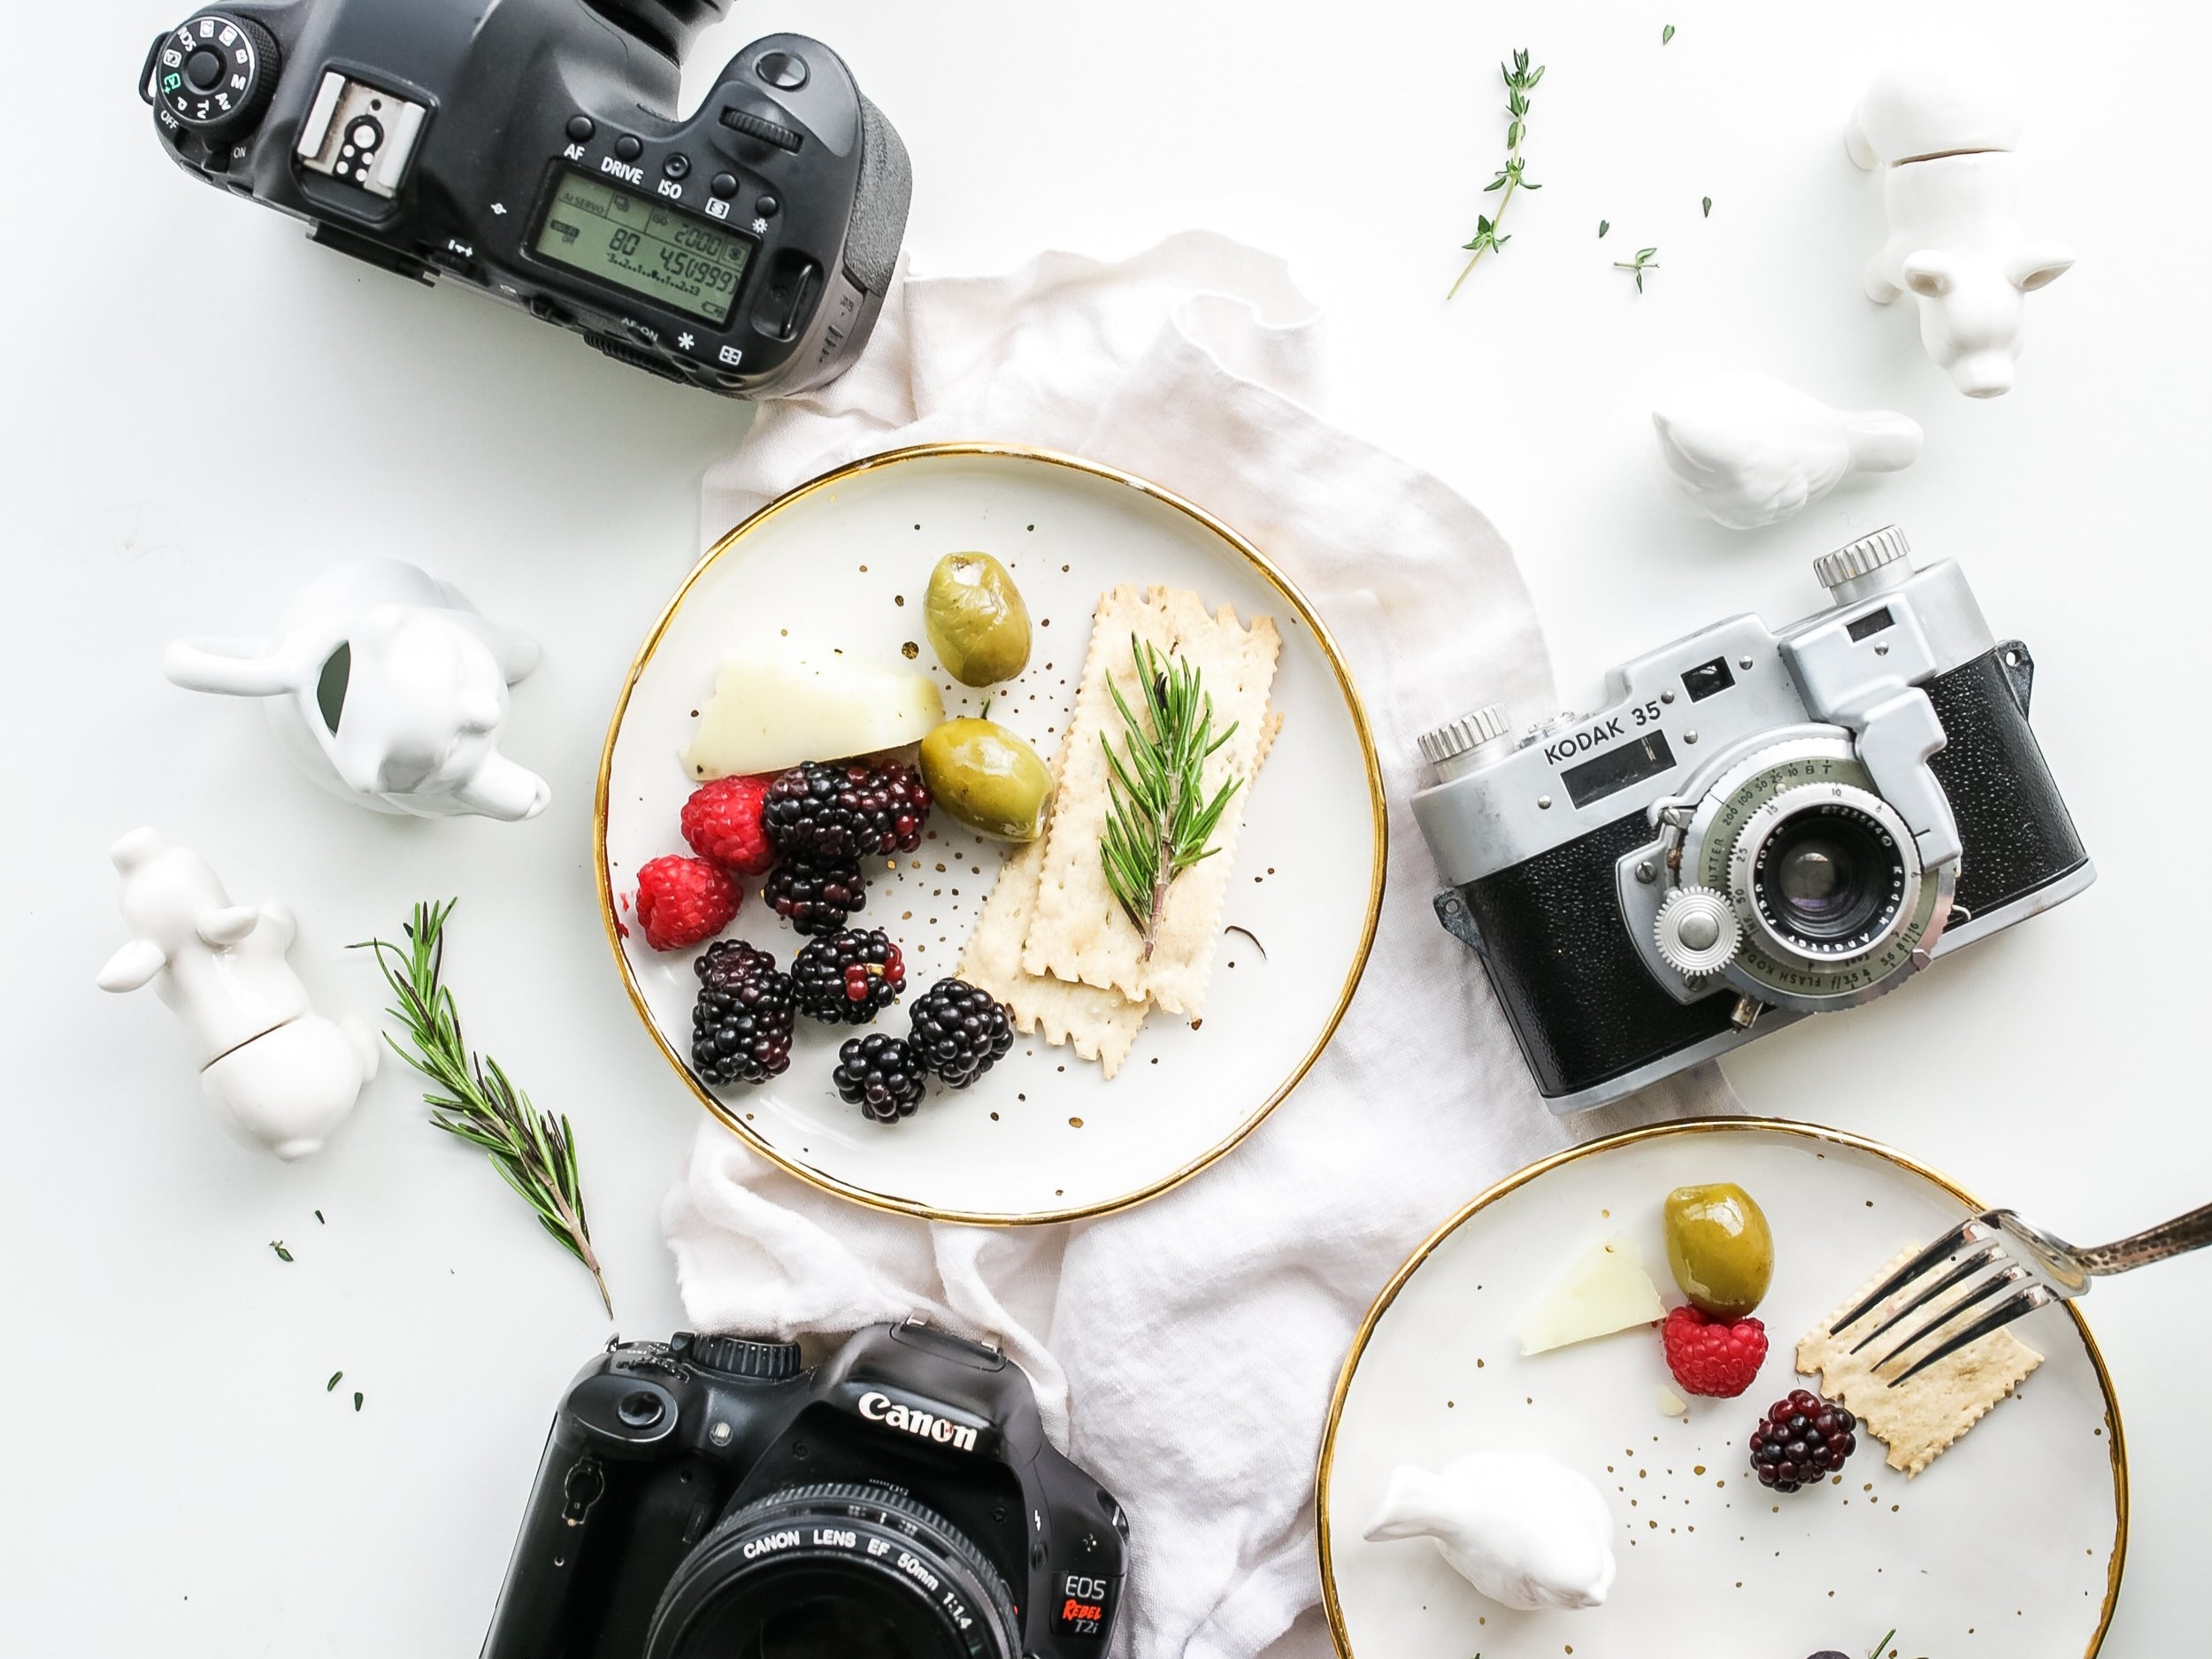 Content Creation - A core pillar of Rune Haus is creating content for brands, companies, farms, and influencers to help them connect to their consumer. Whether it's a beautiful Instagram image, a wellness article, or an easy, weeknight dinner recipe; I have you covered.